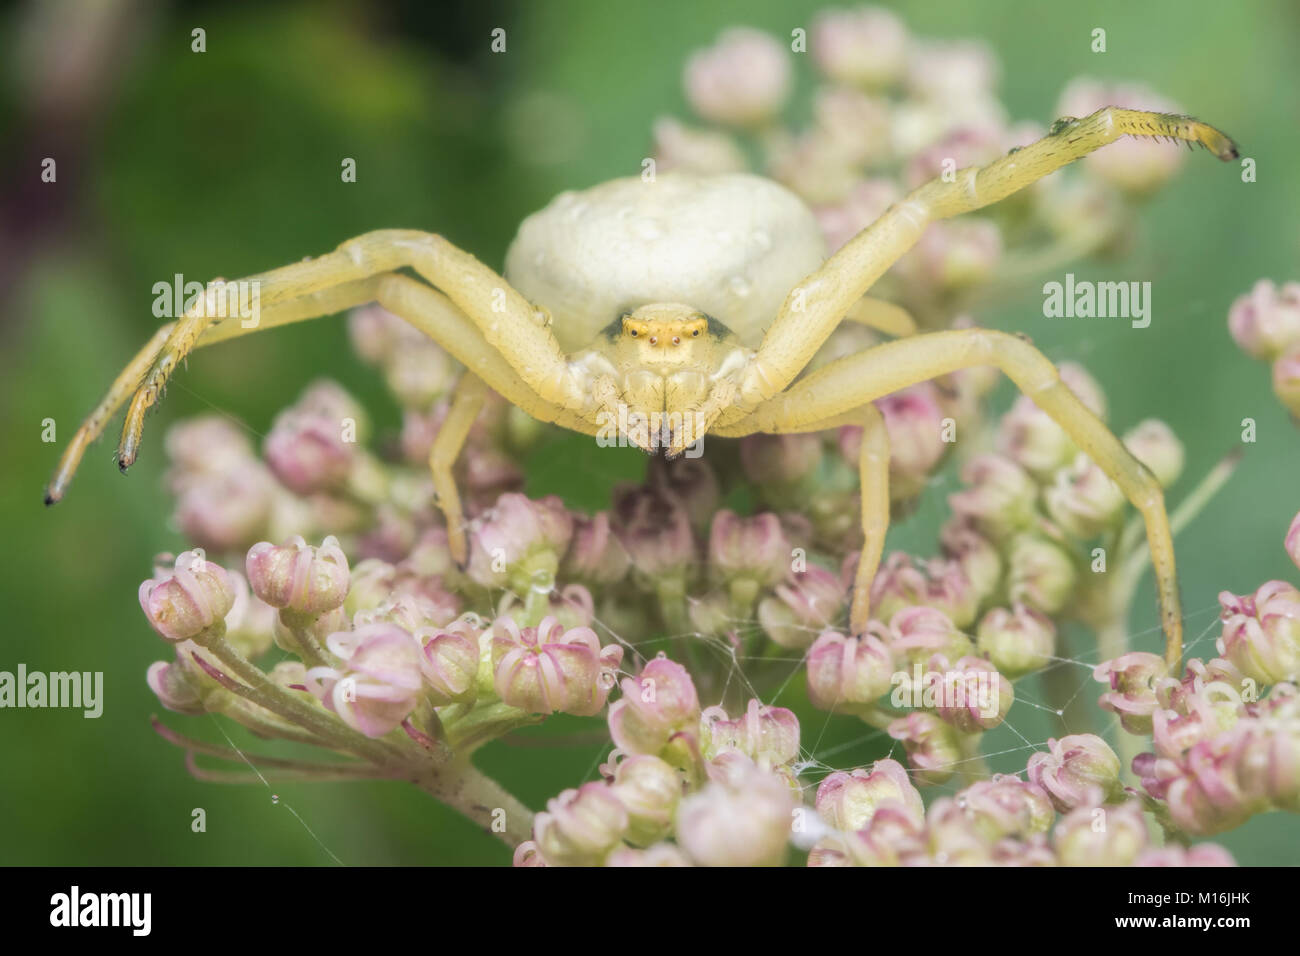 Frontal view of a Crab Spider (Misumena vatia) in defensive mode resting on an umbellifer. Cahir, Tipperary, Ireland. - Stock Image